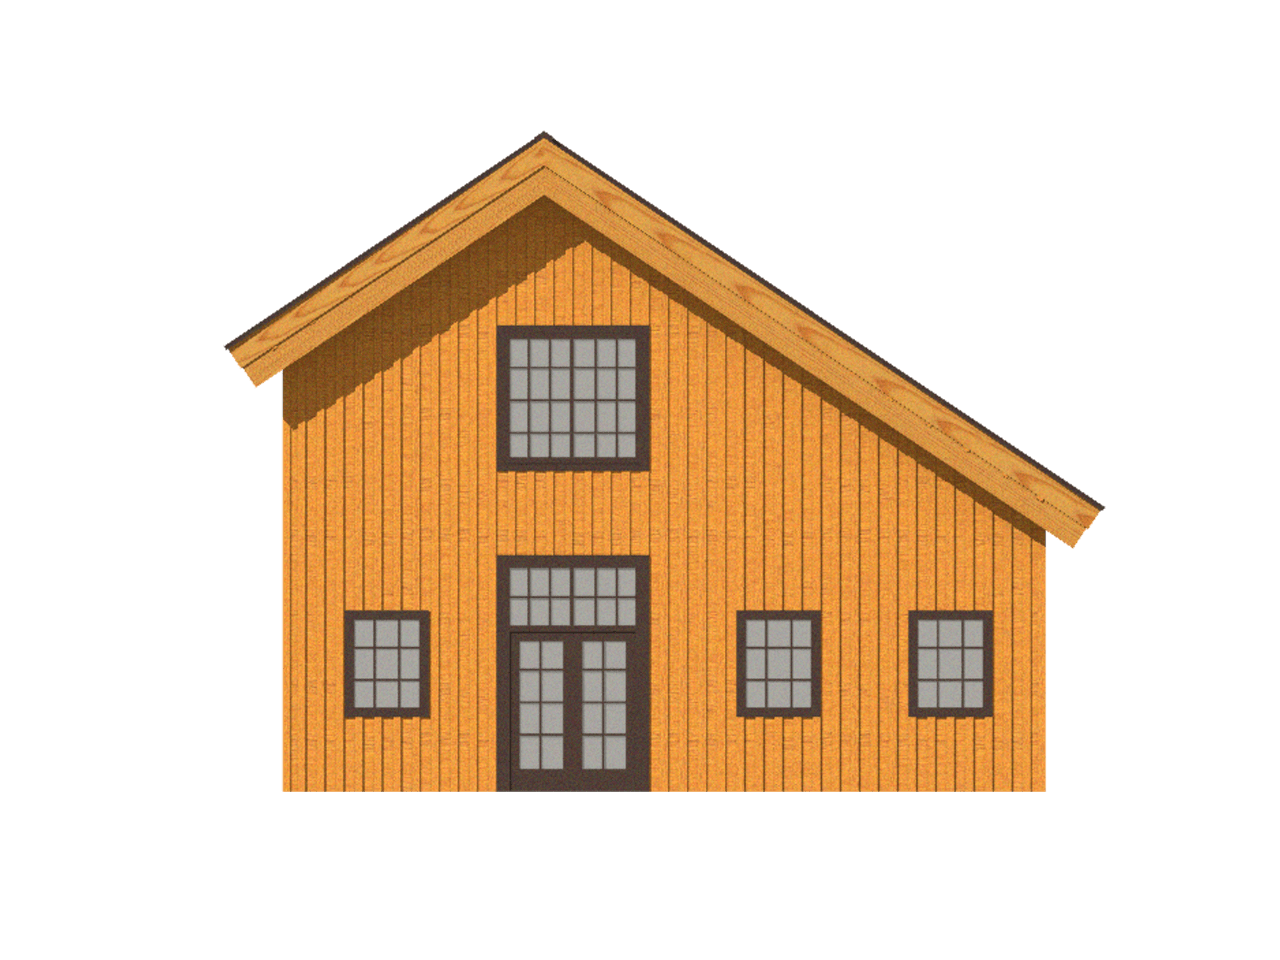 barn home saltbox roof line 2d